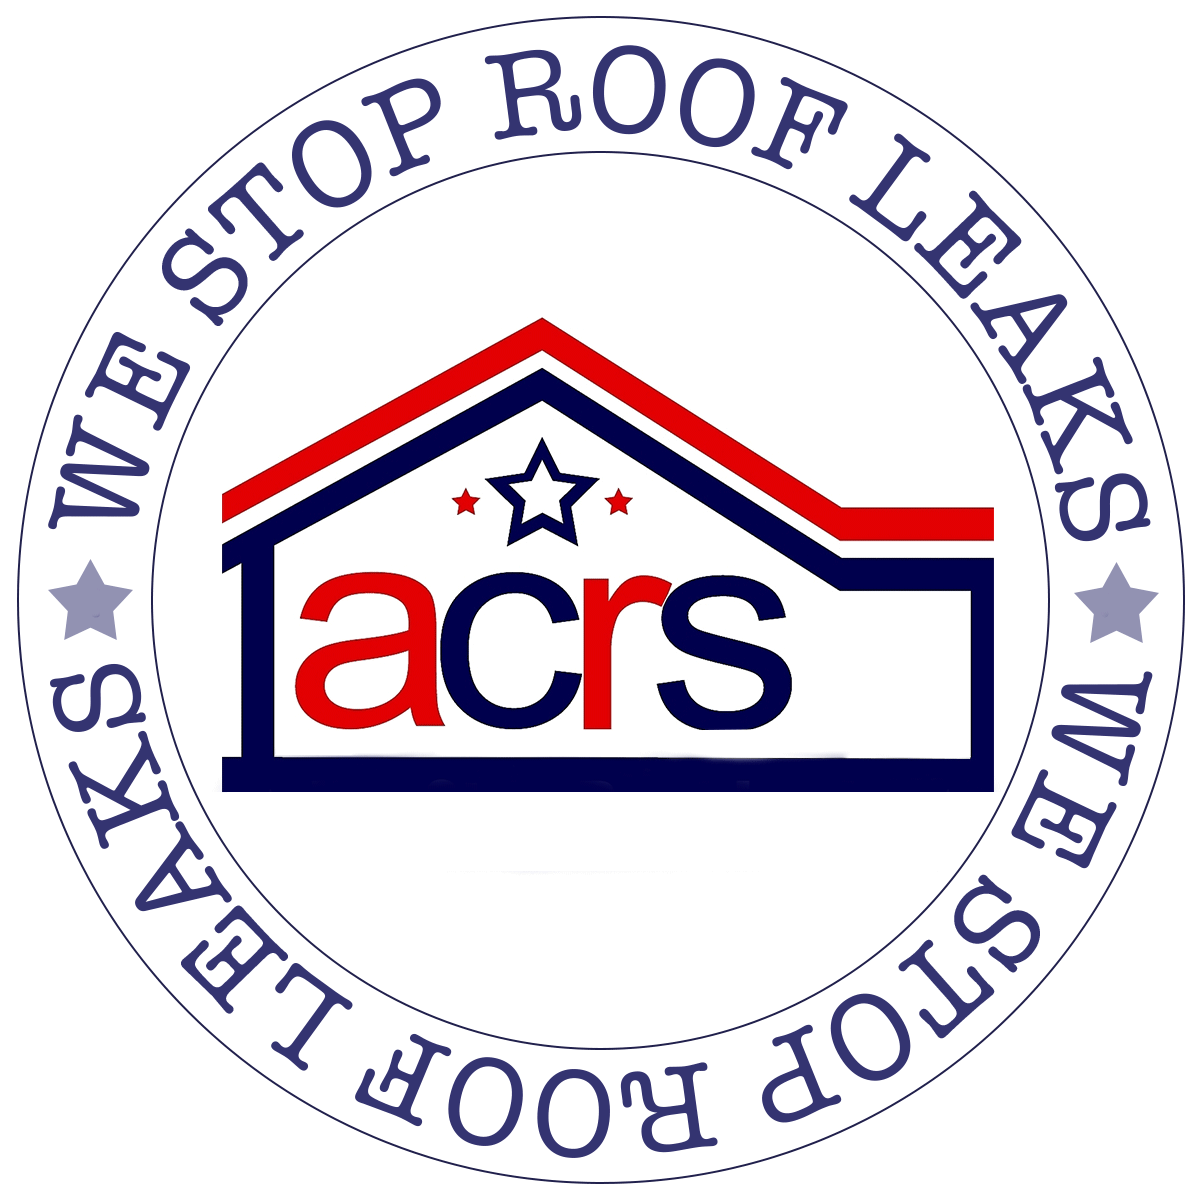 WE STOP ROOF LEAKS